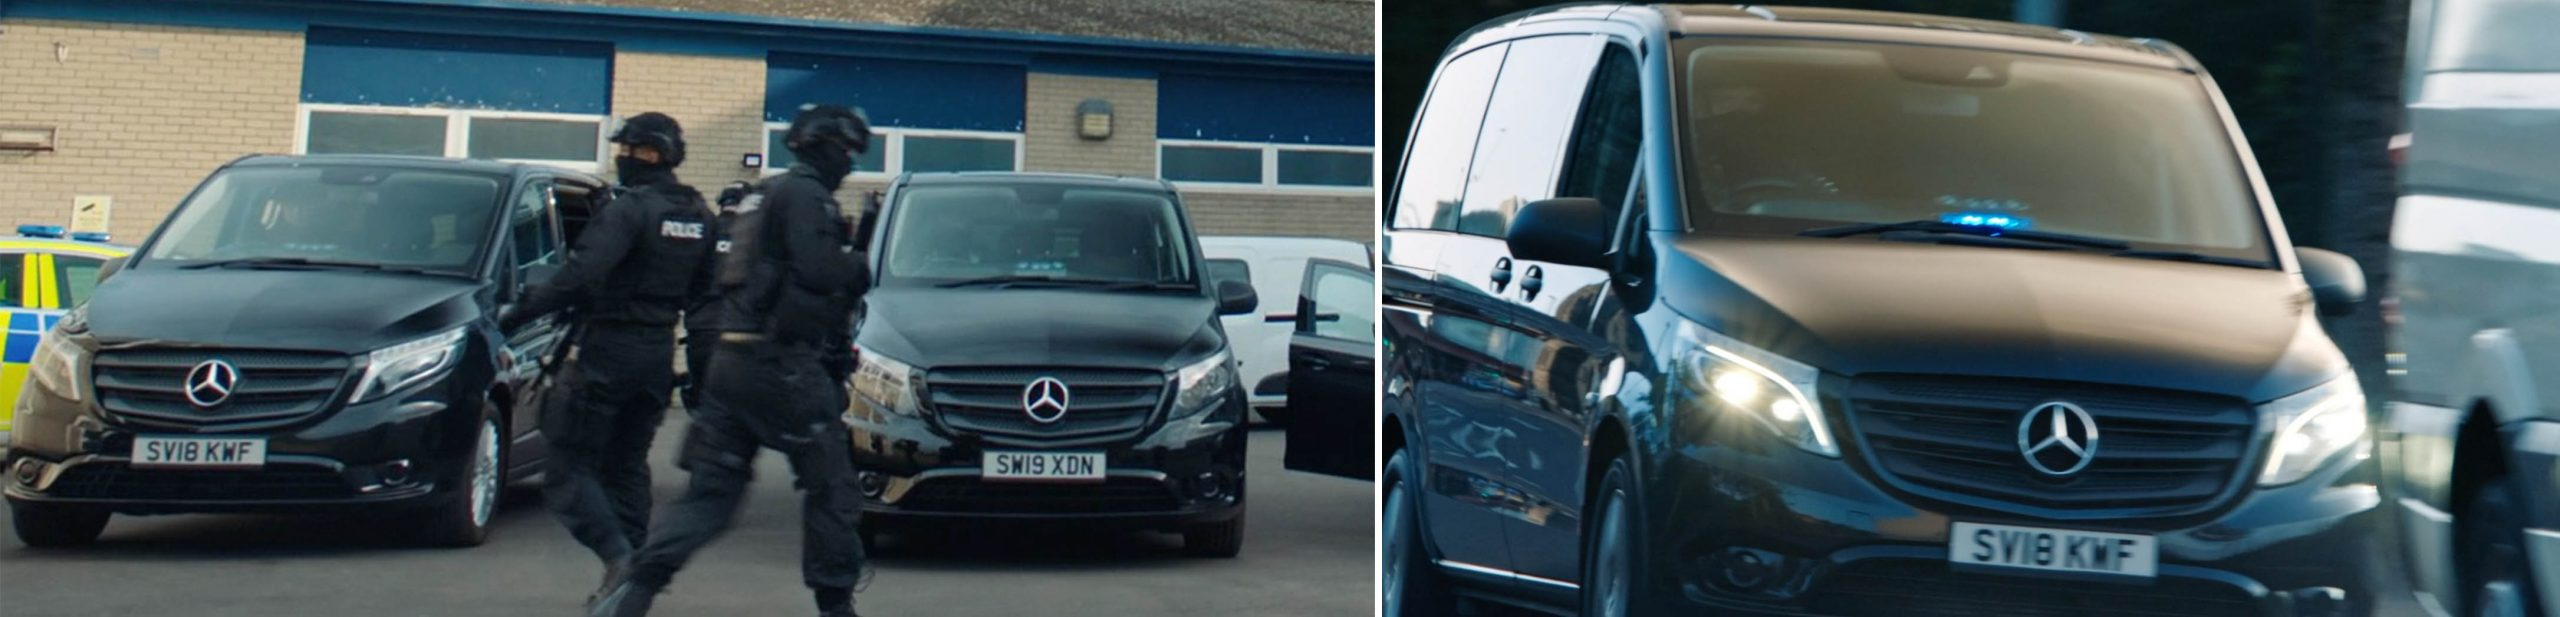 Mercedes-Benz product placement in season 6 of LINE OF DUTY